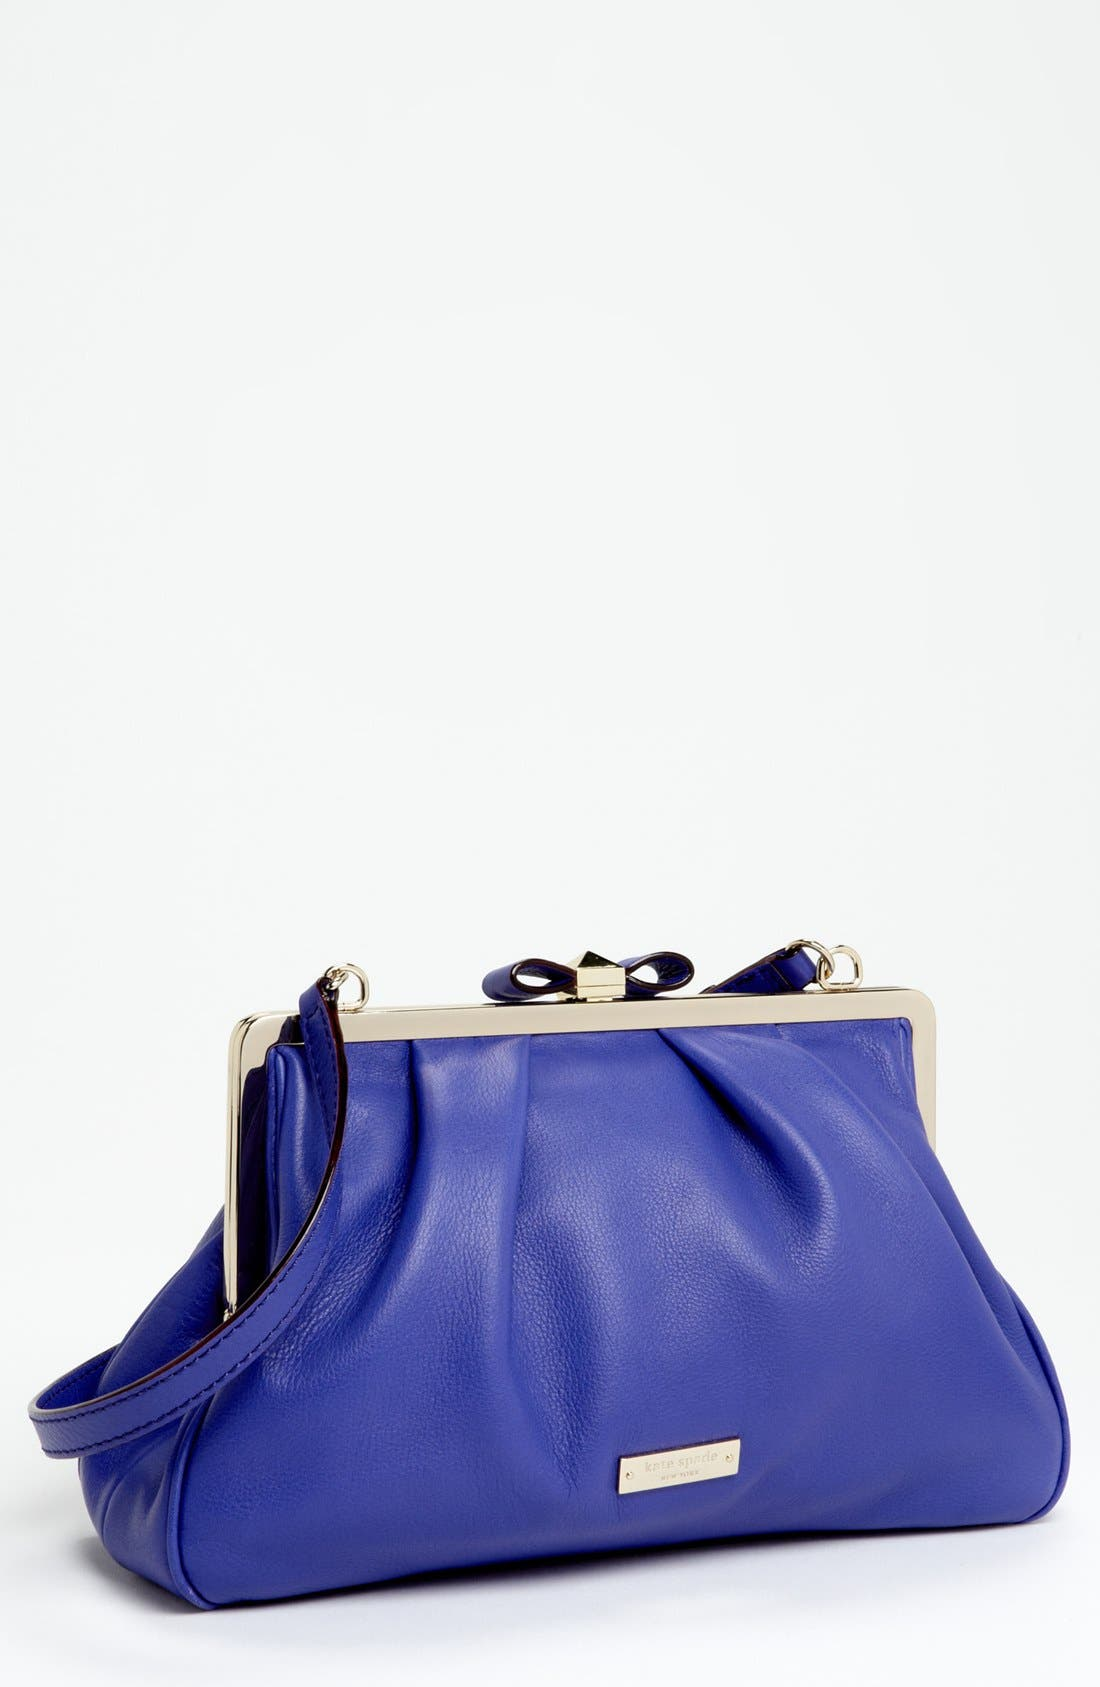 Main Image - kate spade new york 'dixie street - lolla' leather shoulder bag